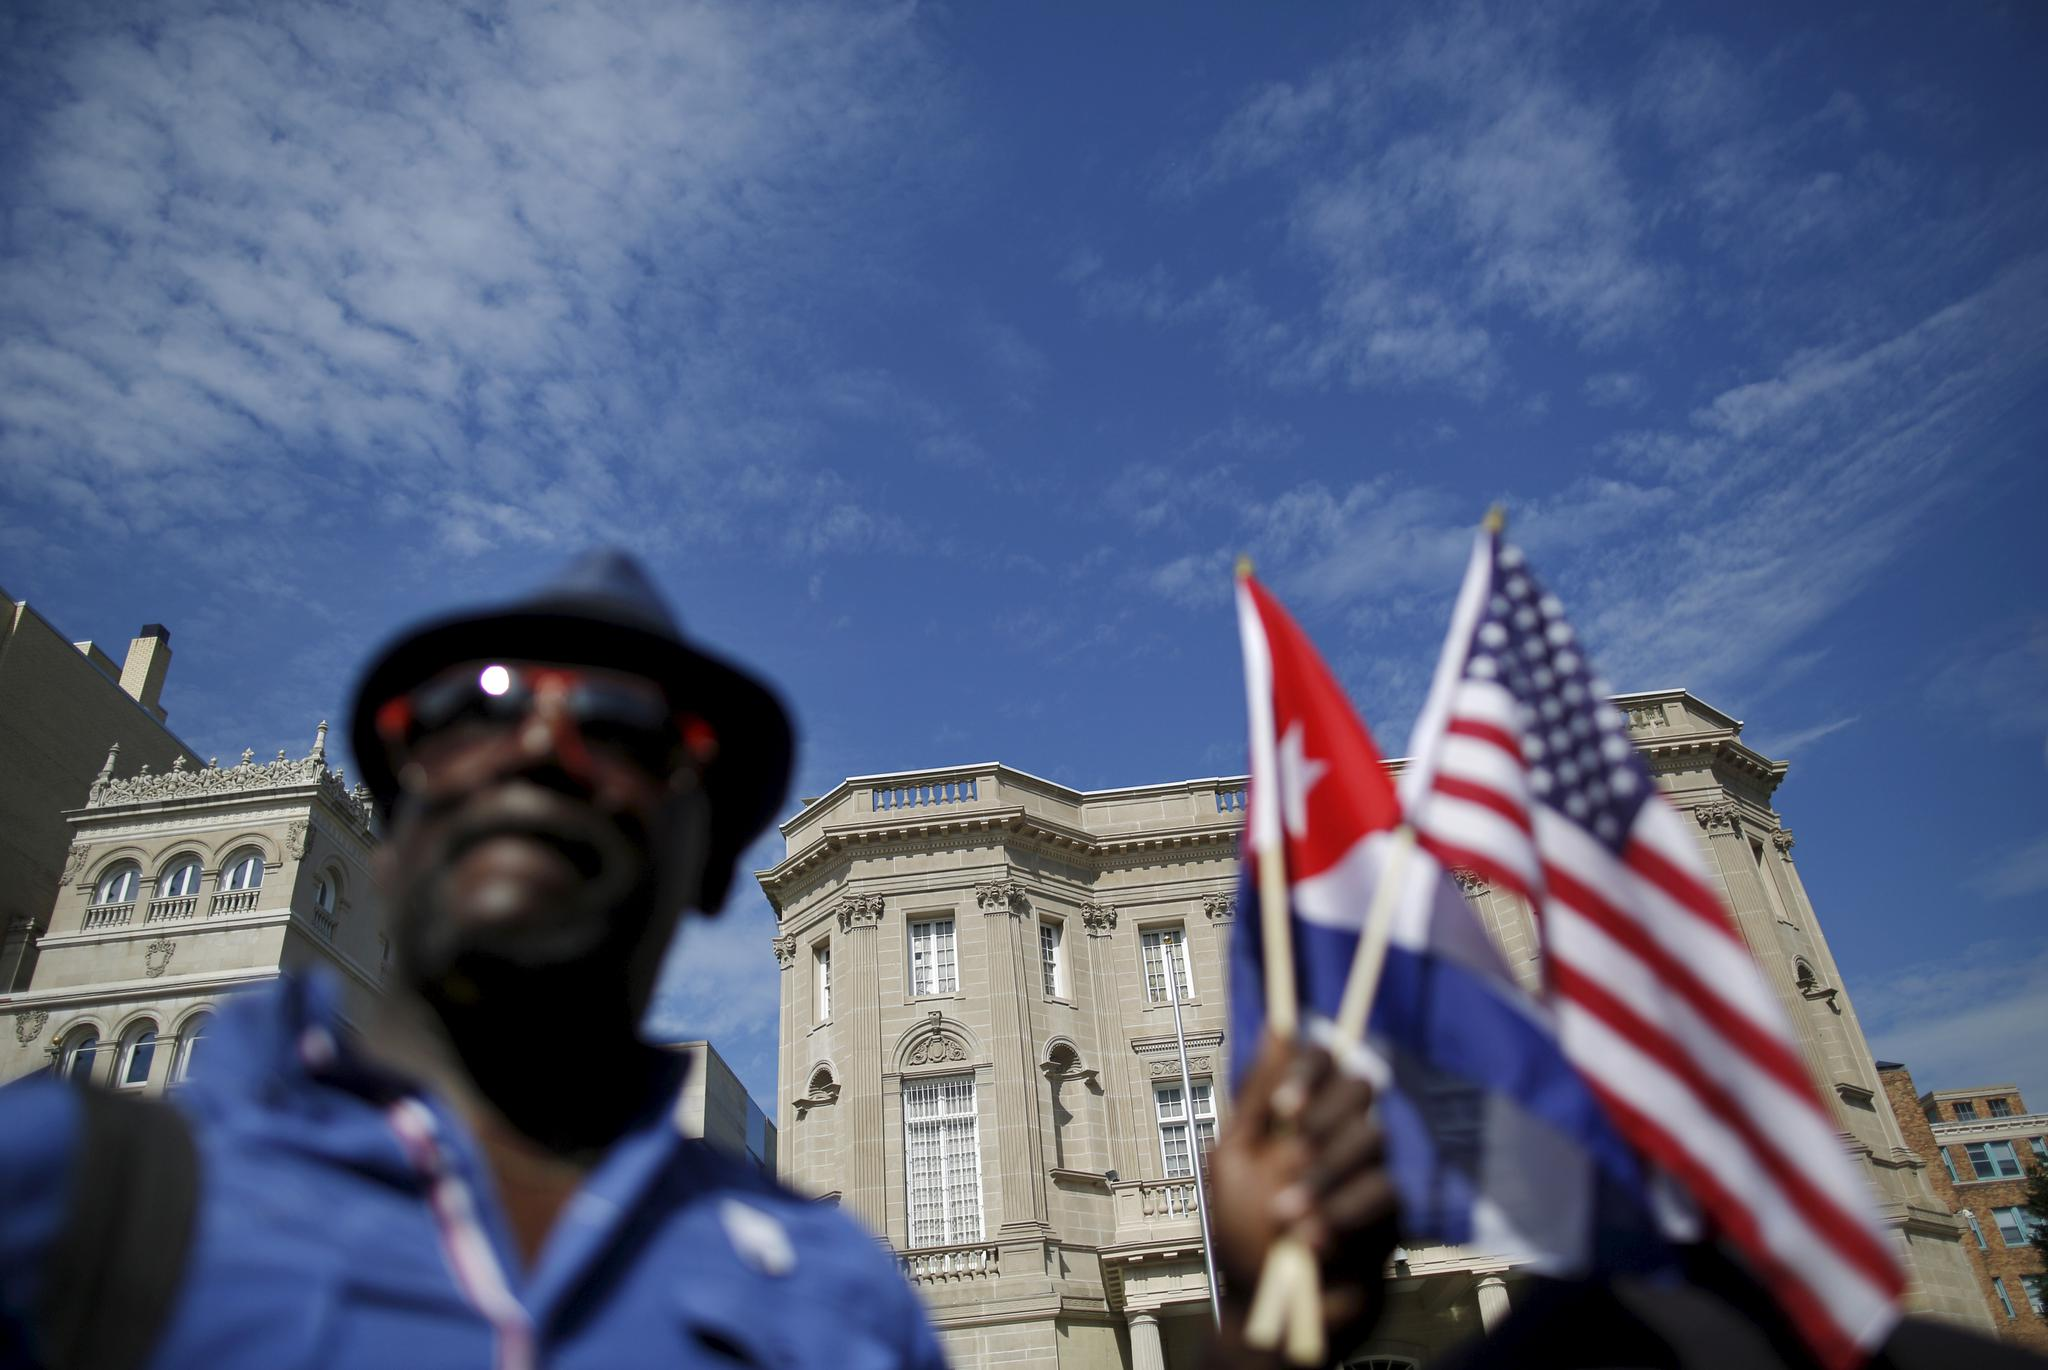 The newly reopened Cuban Embassy is seen in the background as a man holds U.S. and Cuban national flags on July 20, 2015.